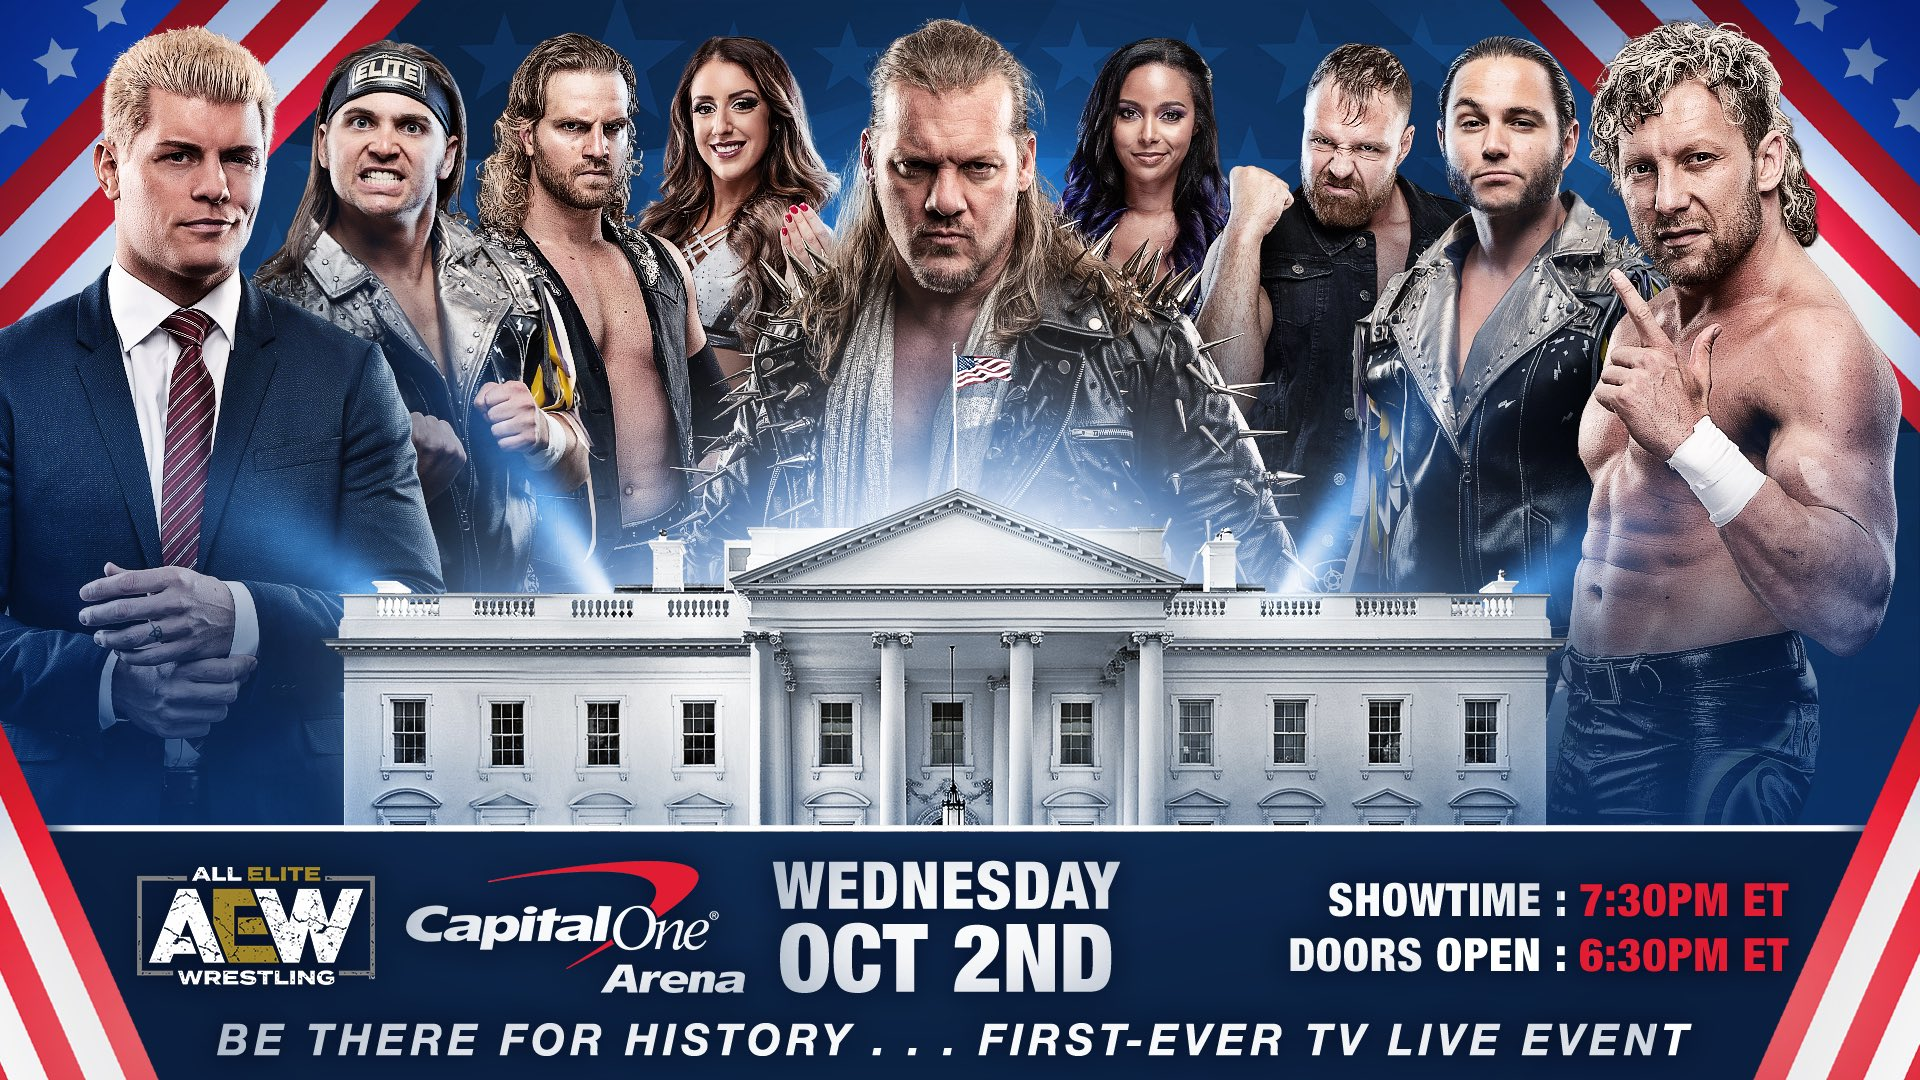 Top AEW Stars Featured On Promotional Material For First TNT TV Taping, More For The Weekly Series